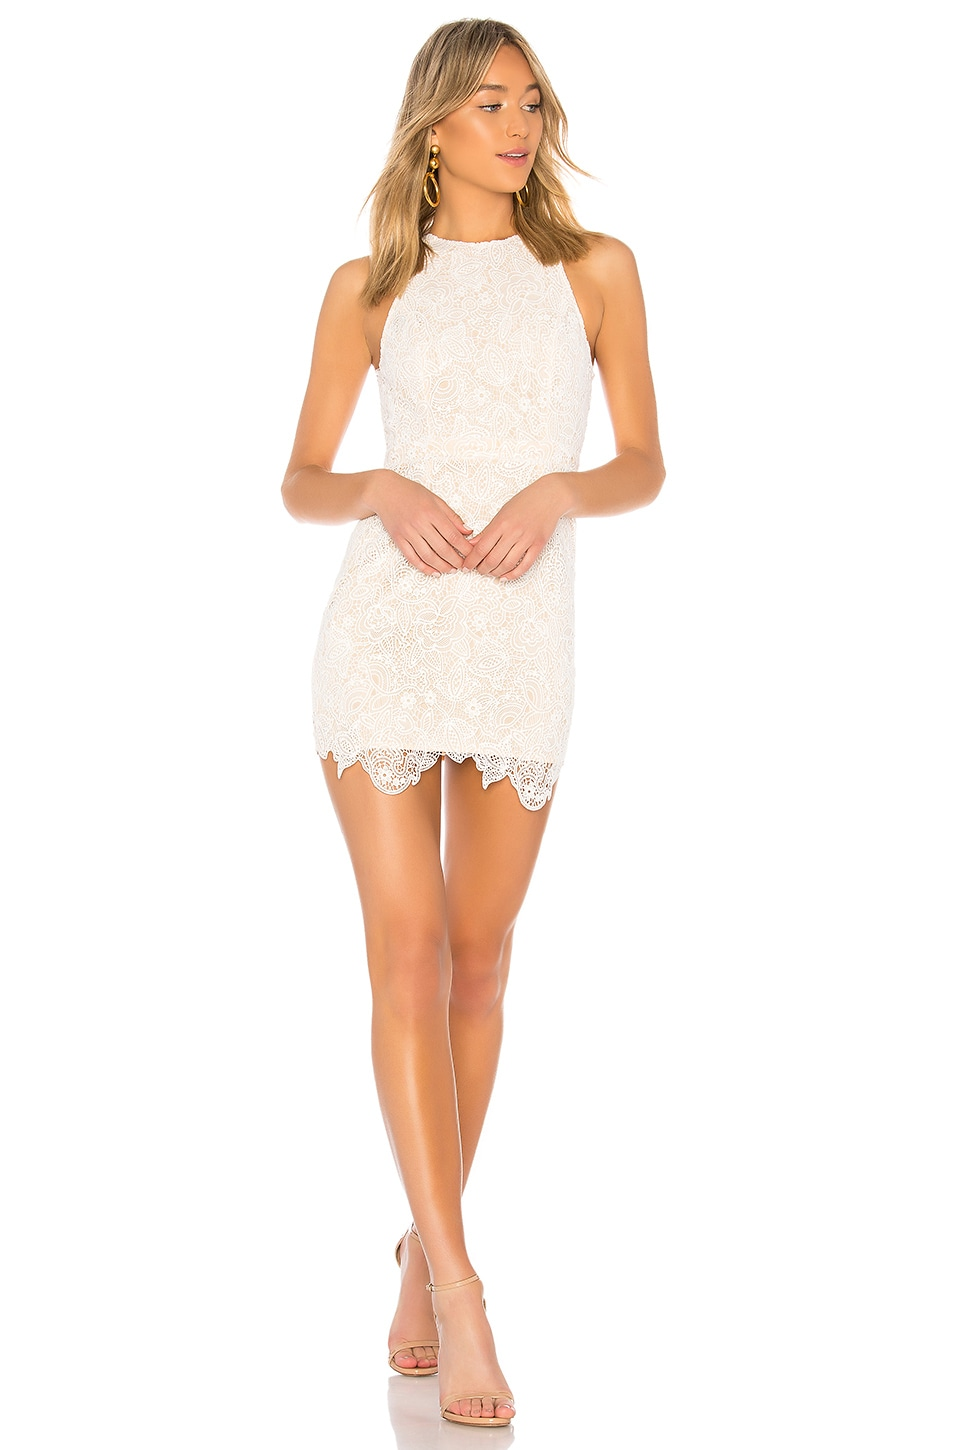 Patty High Neck Crochet Dress             superdown                                                                                                       CA$ 107.51 7